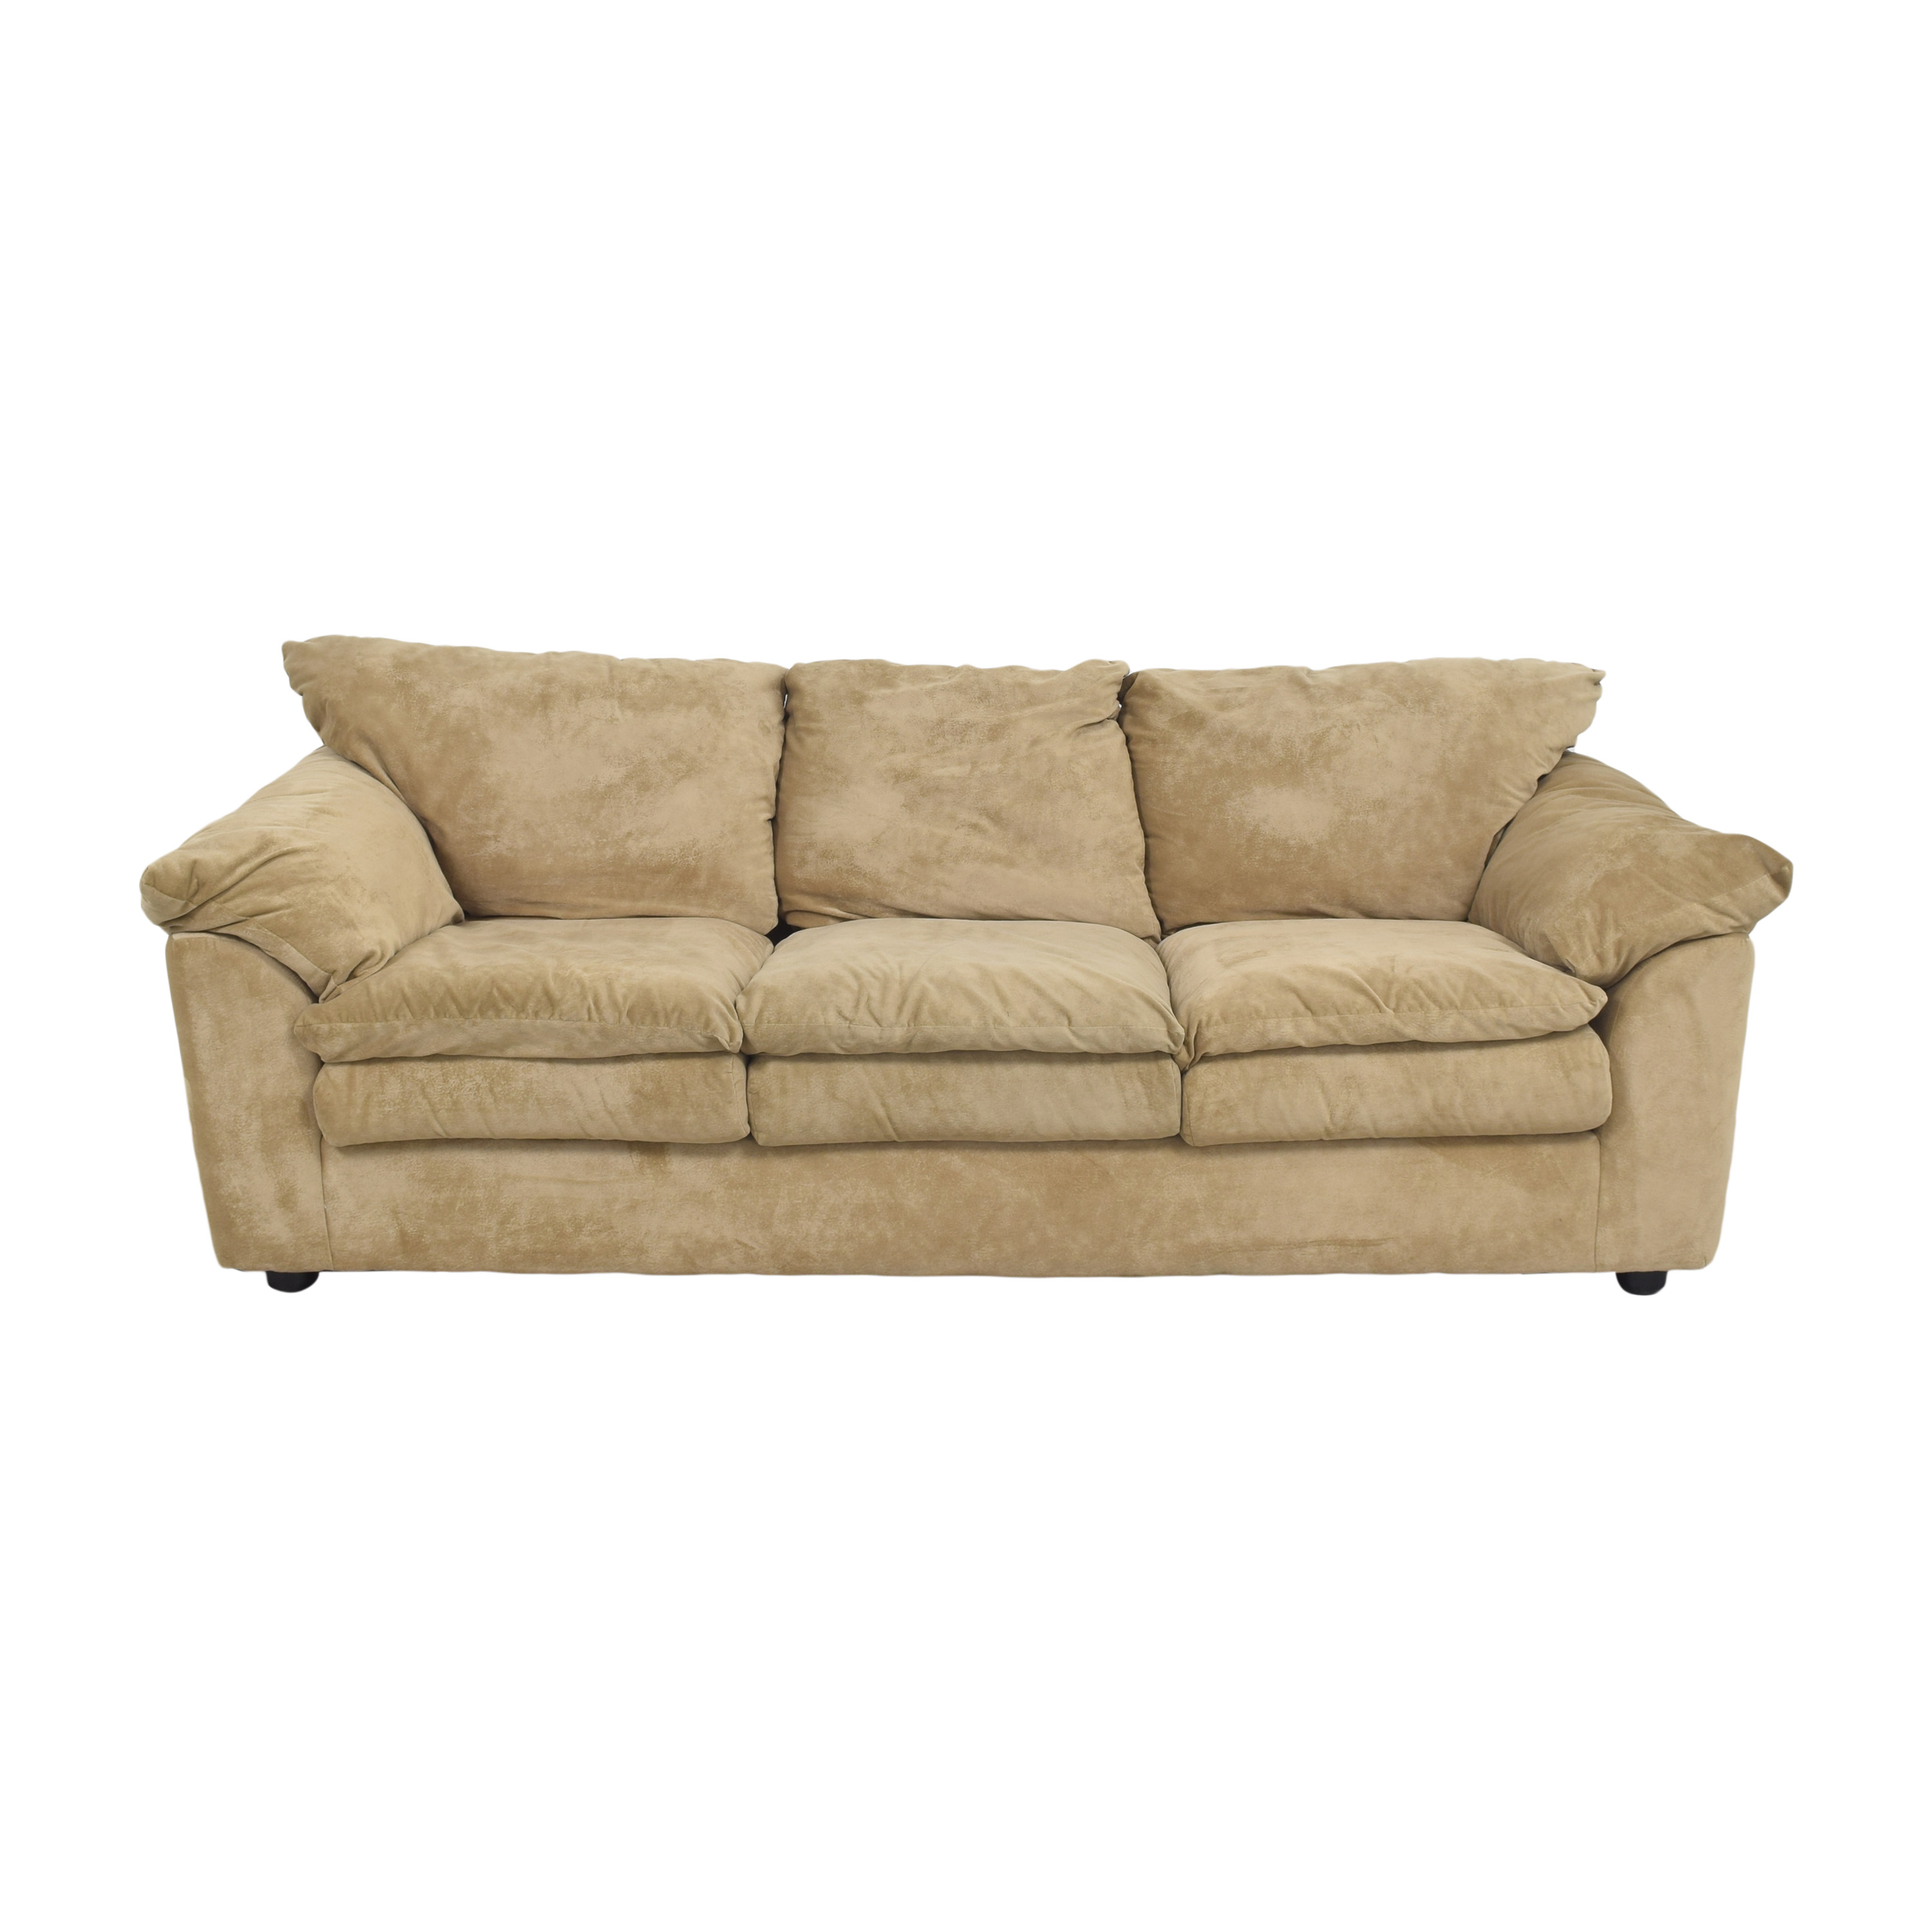 Sealy Sealy Three Cushion Sofa discount